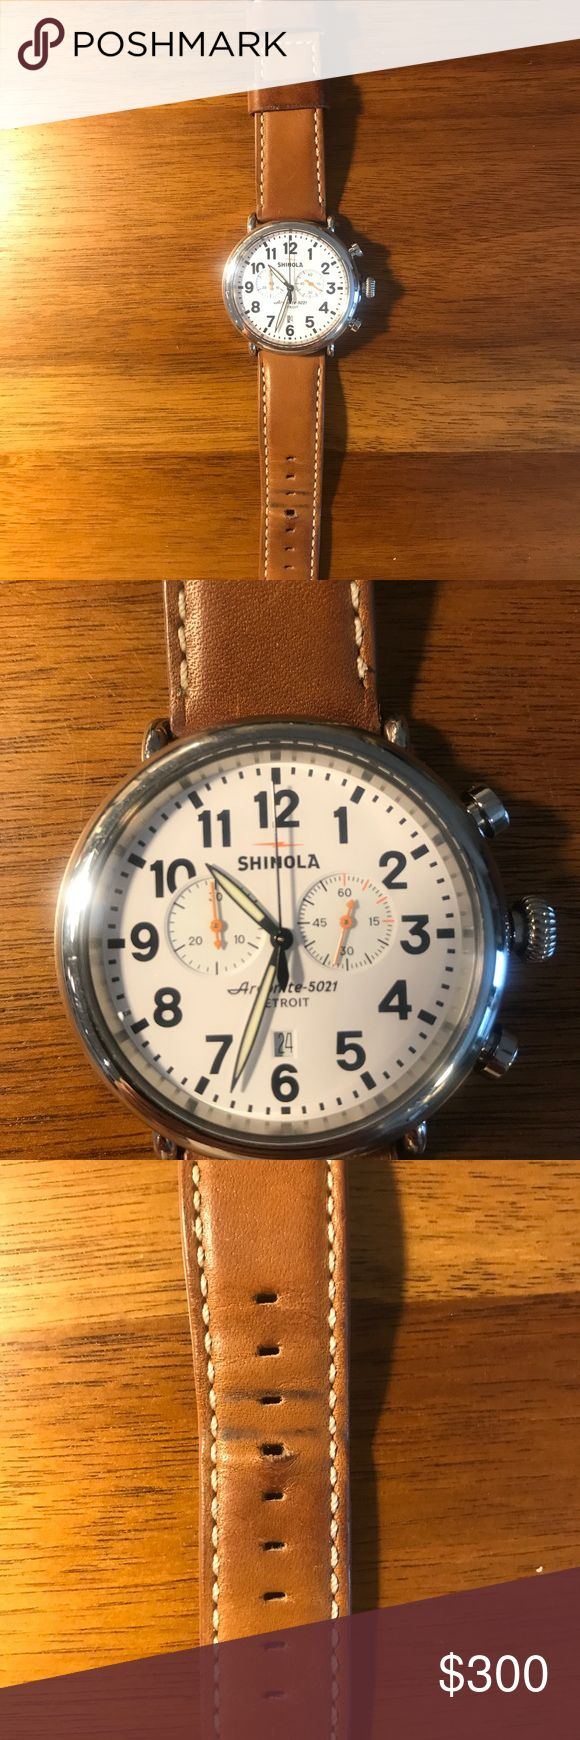 "Shinola The Runwell Chrono 47MM In good shape, worn for about a year. No scratches, just some minor use on the leather straps. ""Driven by an Argonite 5021 high-accuracy quartz movement that propels the hours, minutes, date indicator, stopwatch function, and multiple sundials"".  The watch case is stainless steel with double curve sapphire Chrystal's. The dial is white with super-luminova hands and indices Shinola Accessories Watches"